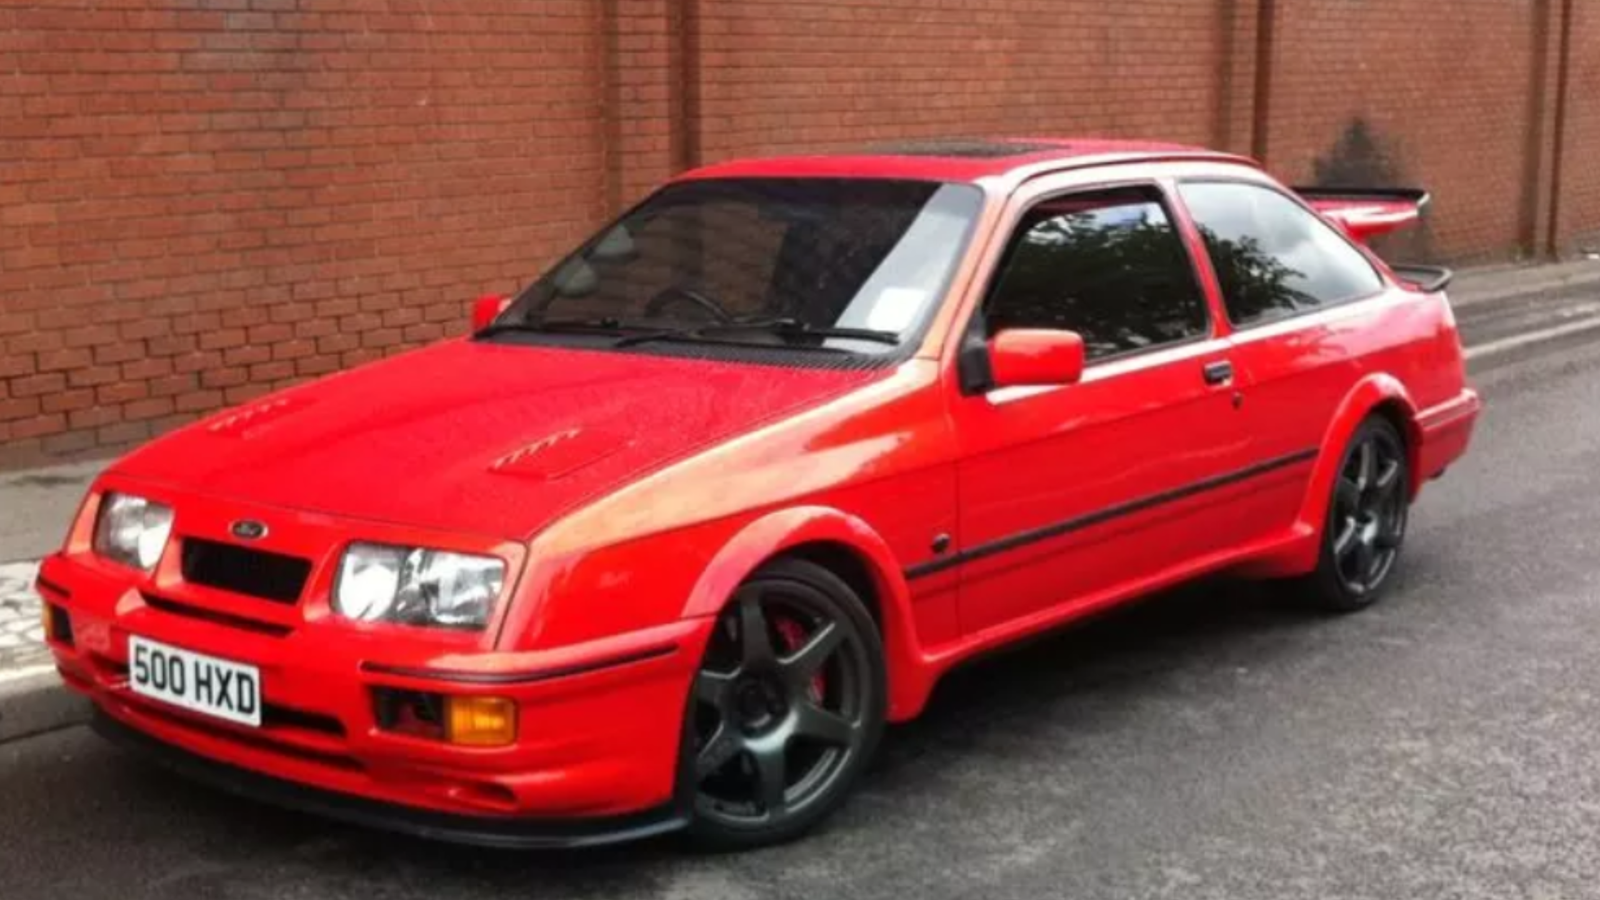 ford sierra cosworth 3 door 1987 with genuine rs500 parts. Black Bedroom Furniture Sets. Home Design Ideas